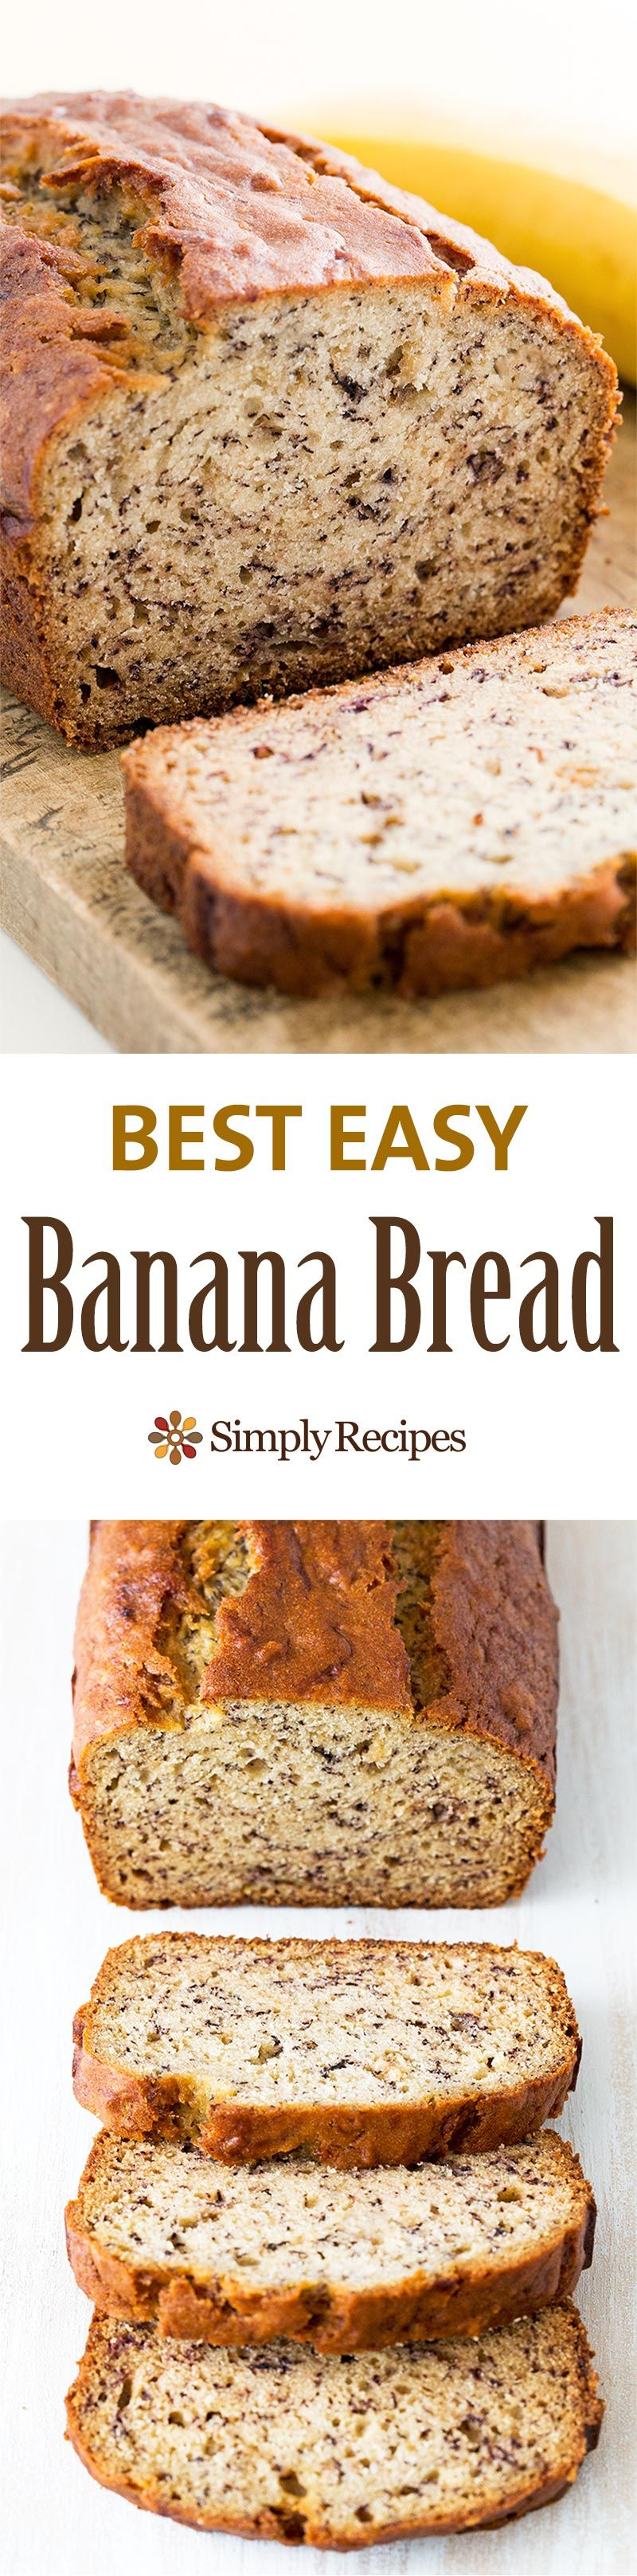 Easiest banana bread ever! No need for a mixer! Delicious and easy, classic banana bread recipe. Most popular recipe on SimplyRecipes.com Perfect for #MothersDay!